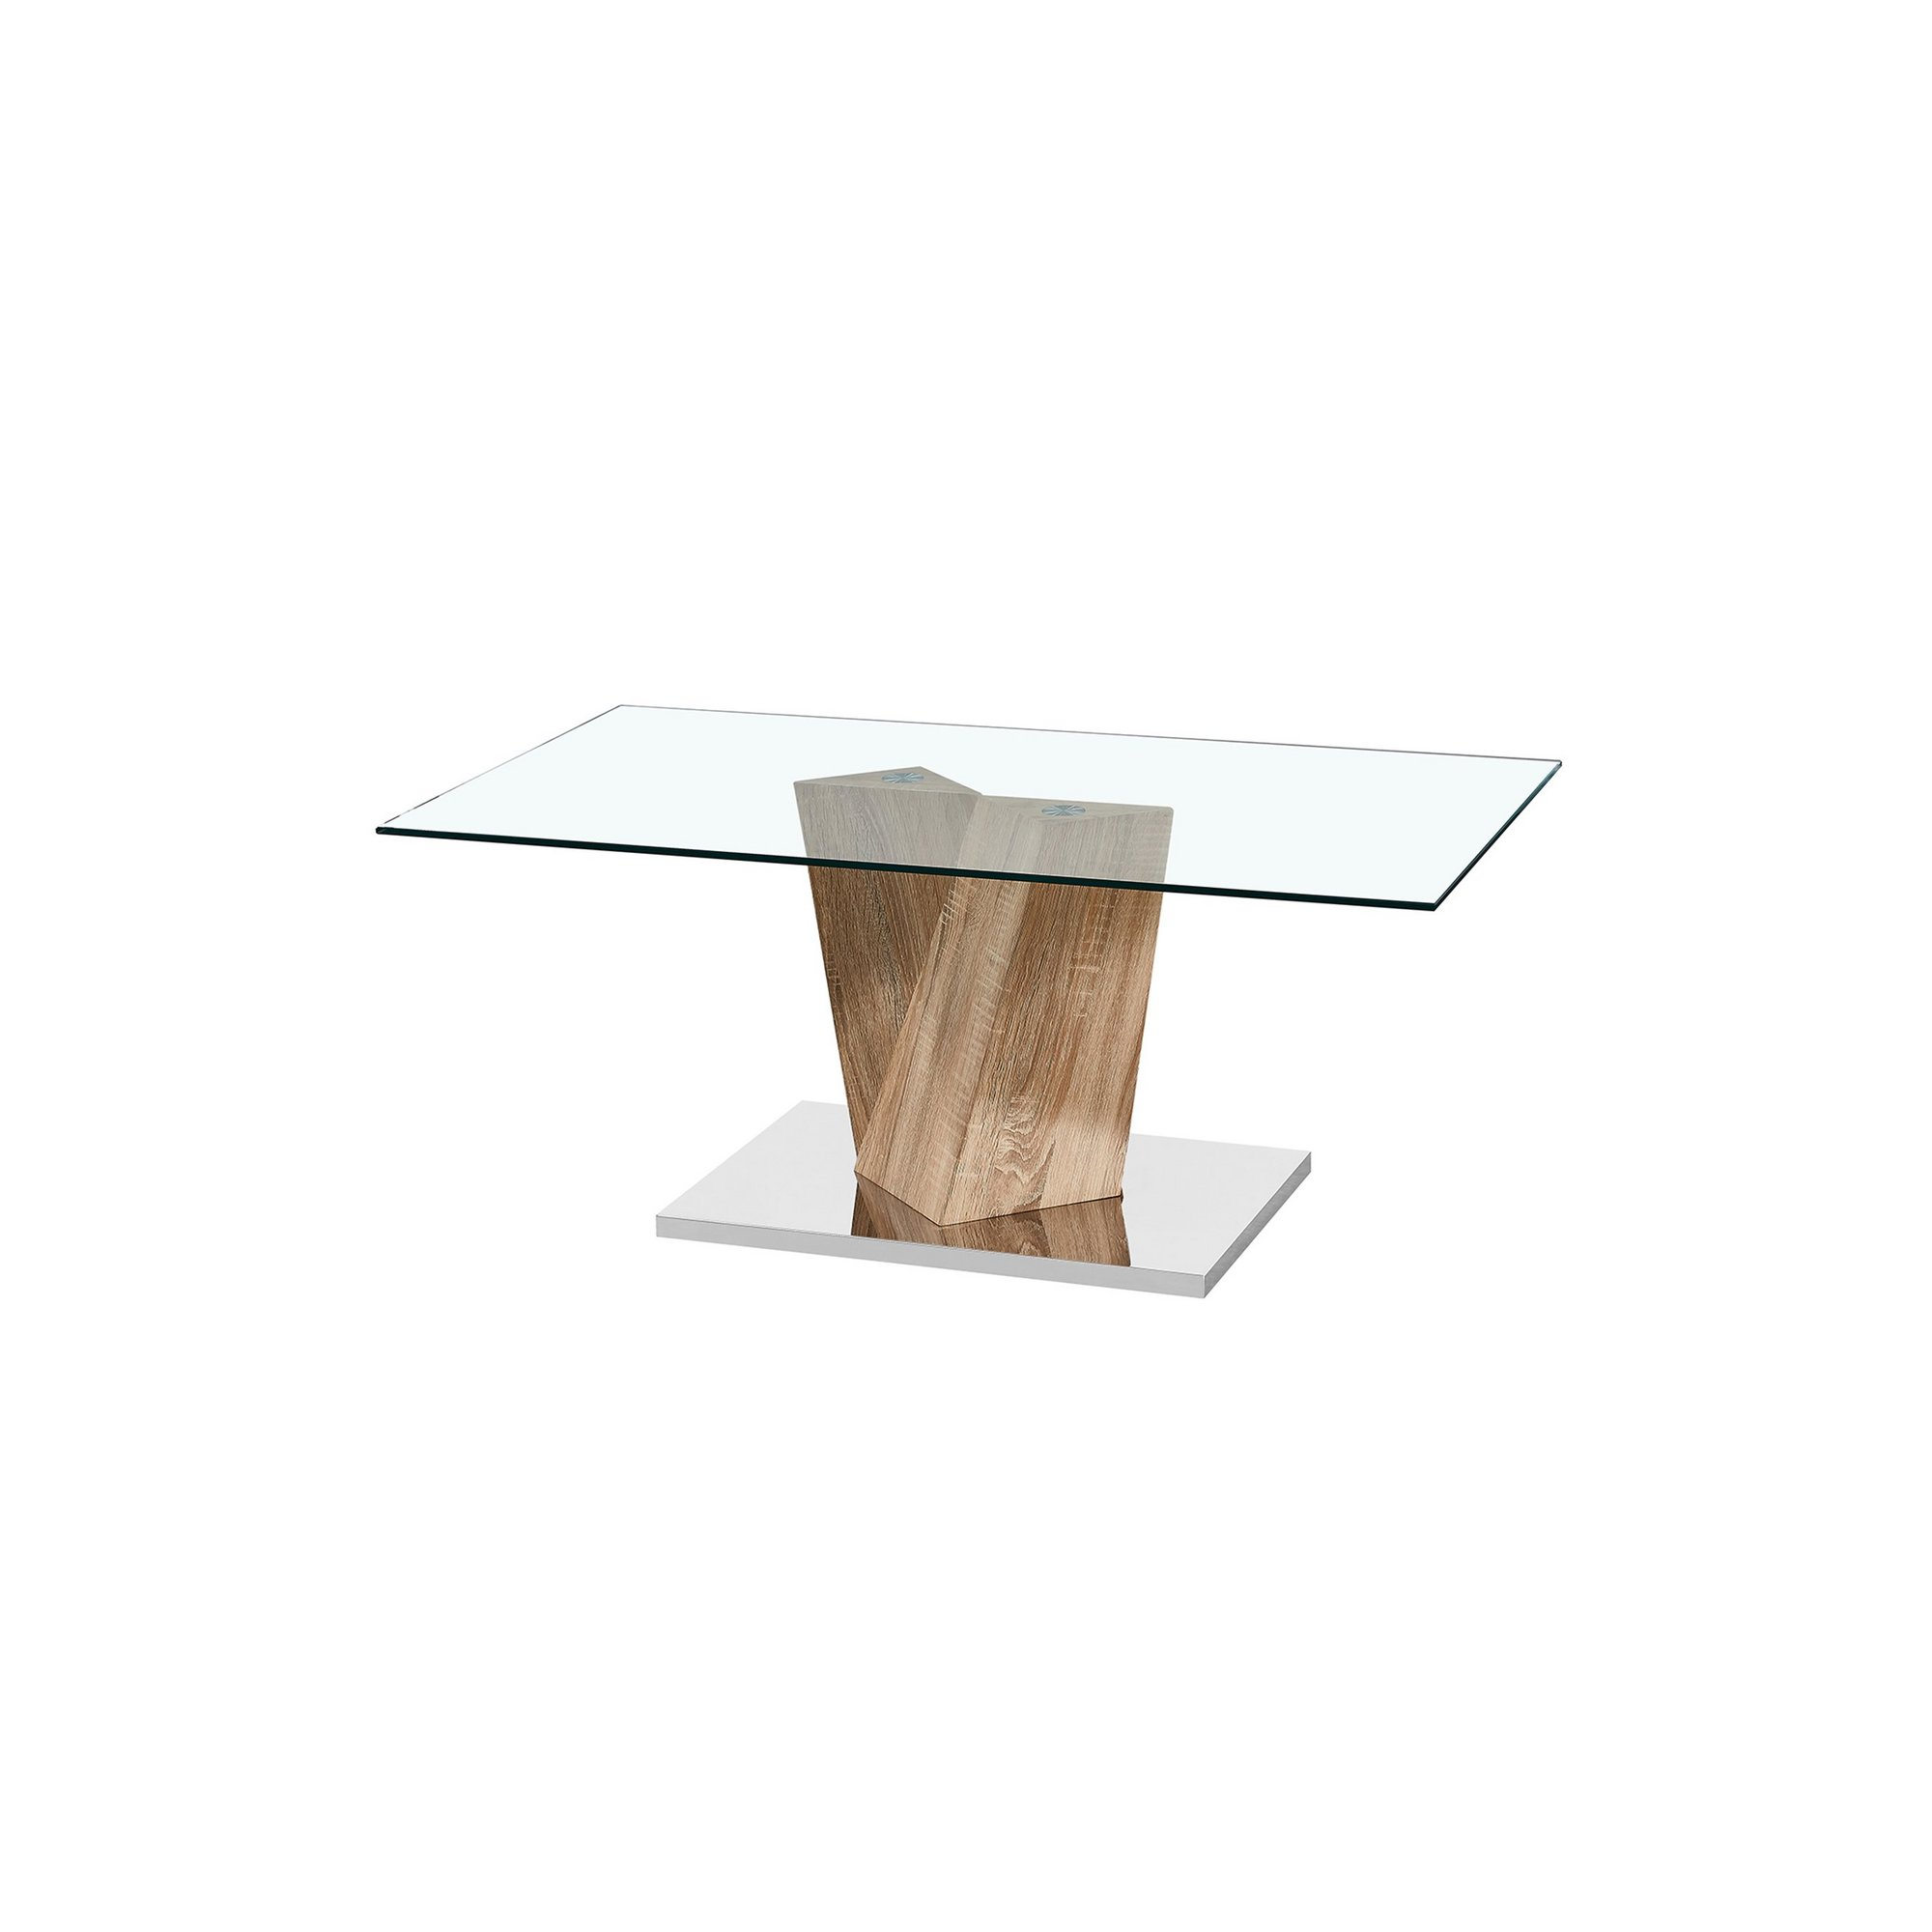 Image of Alpha Coffee Table with Oak Effect Base